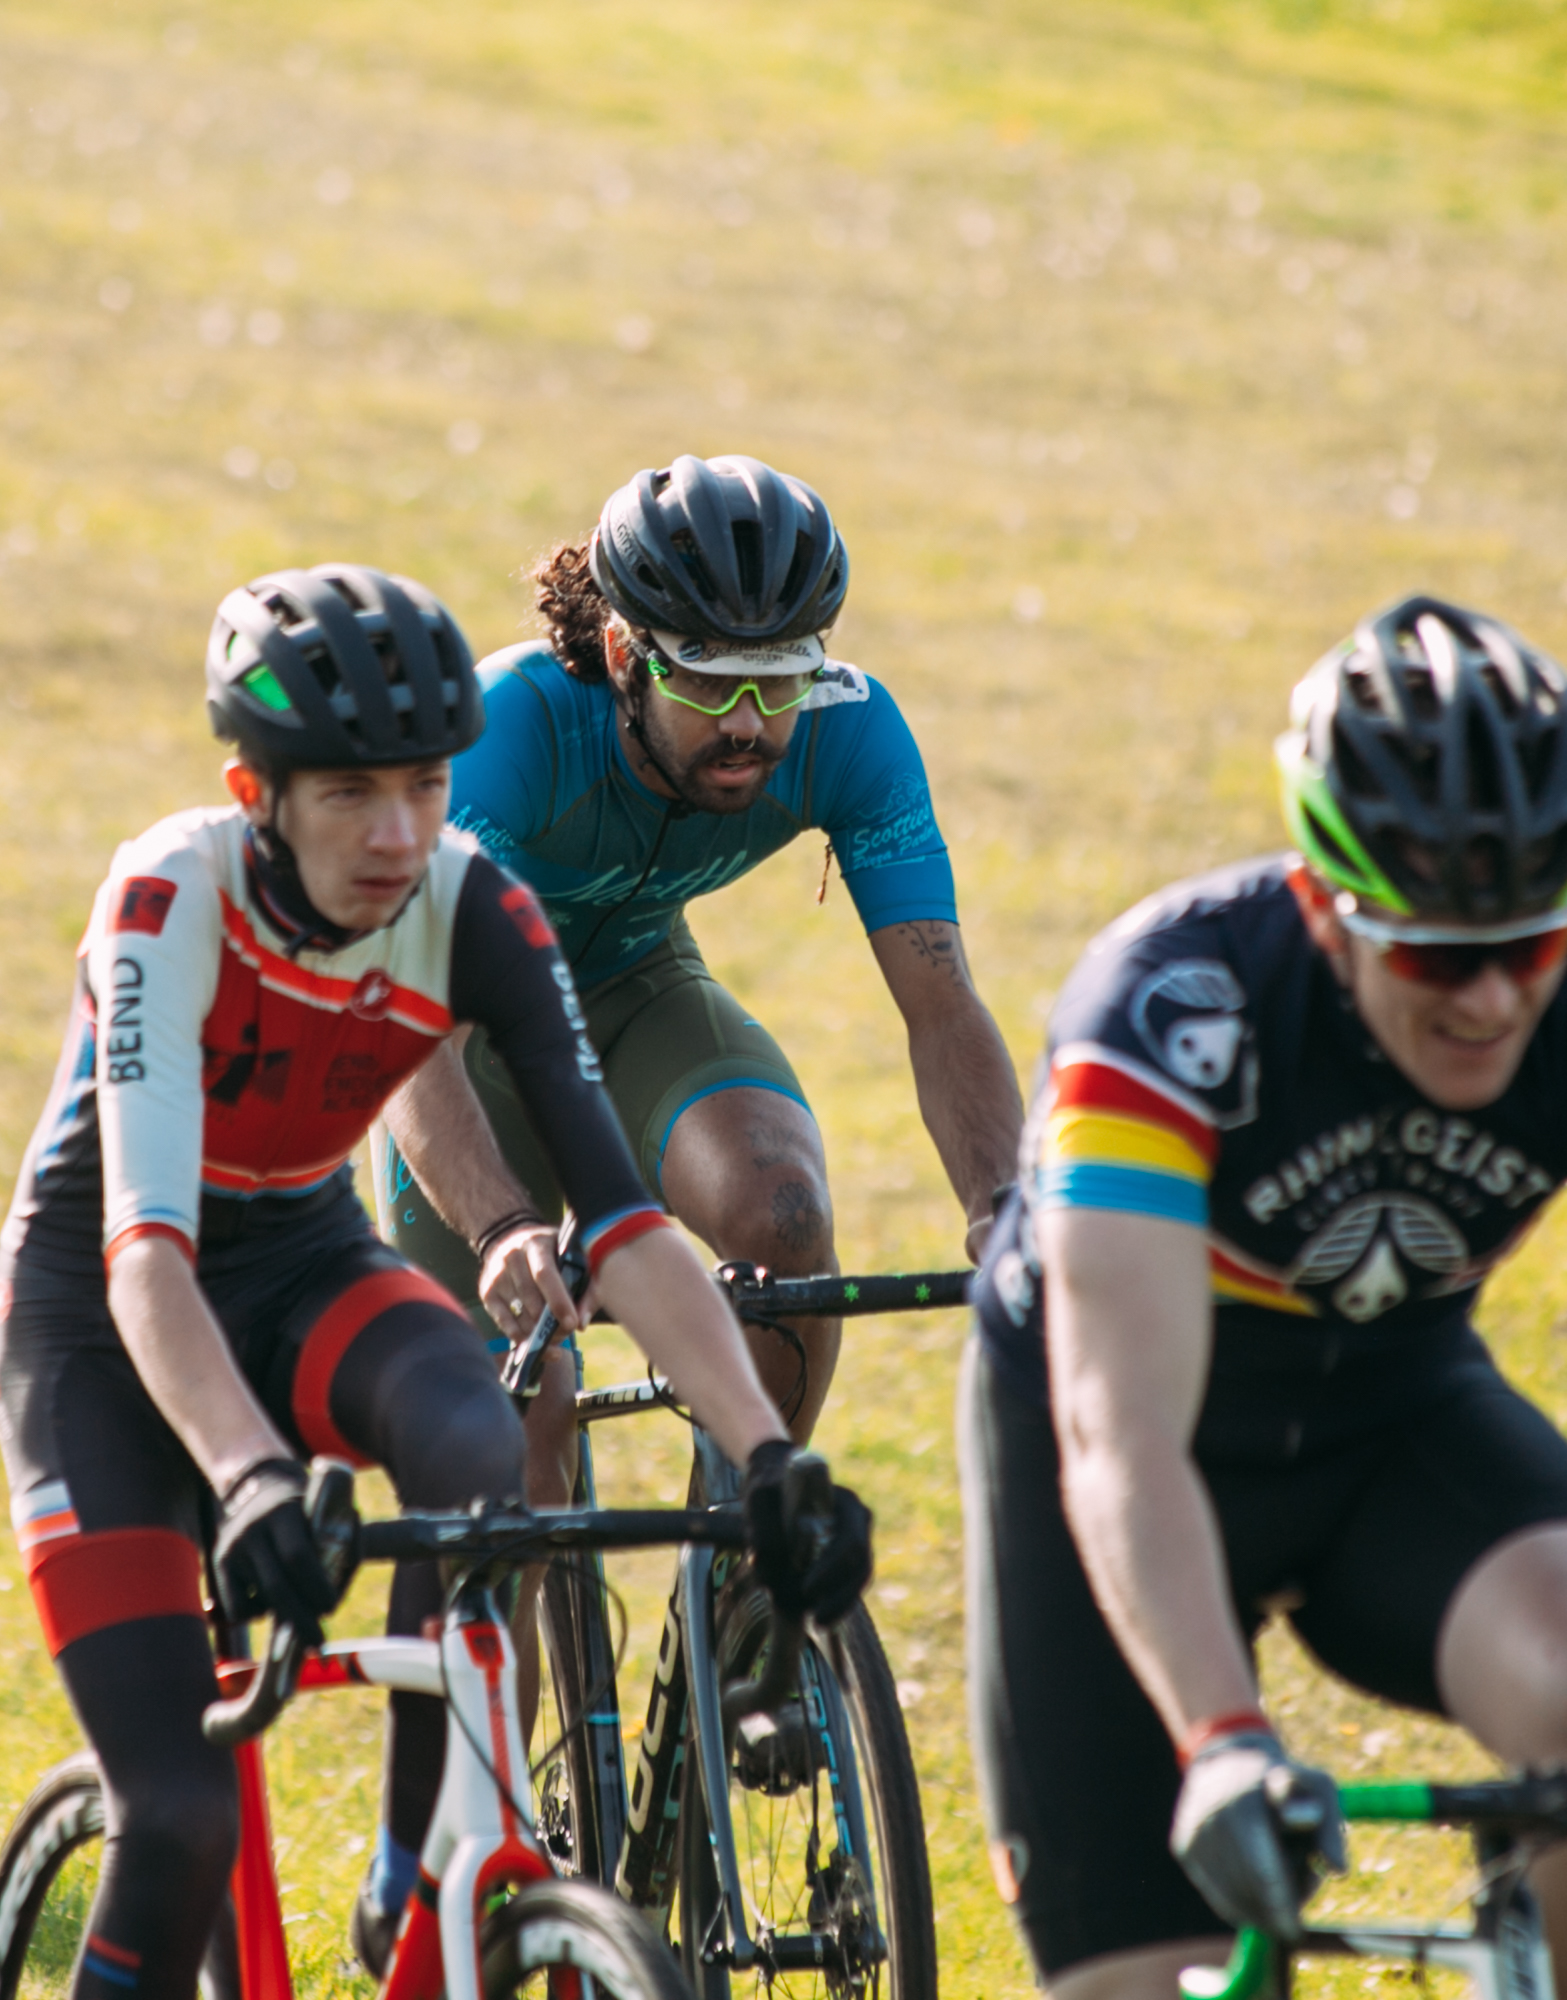 Cyclocross18_CCCX_RainierHS-26-mettlecycling.jpg